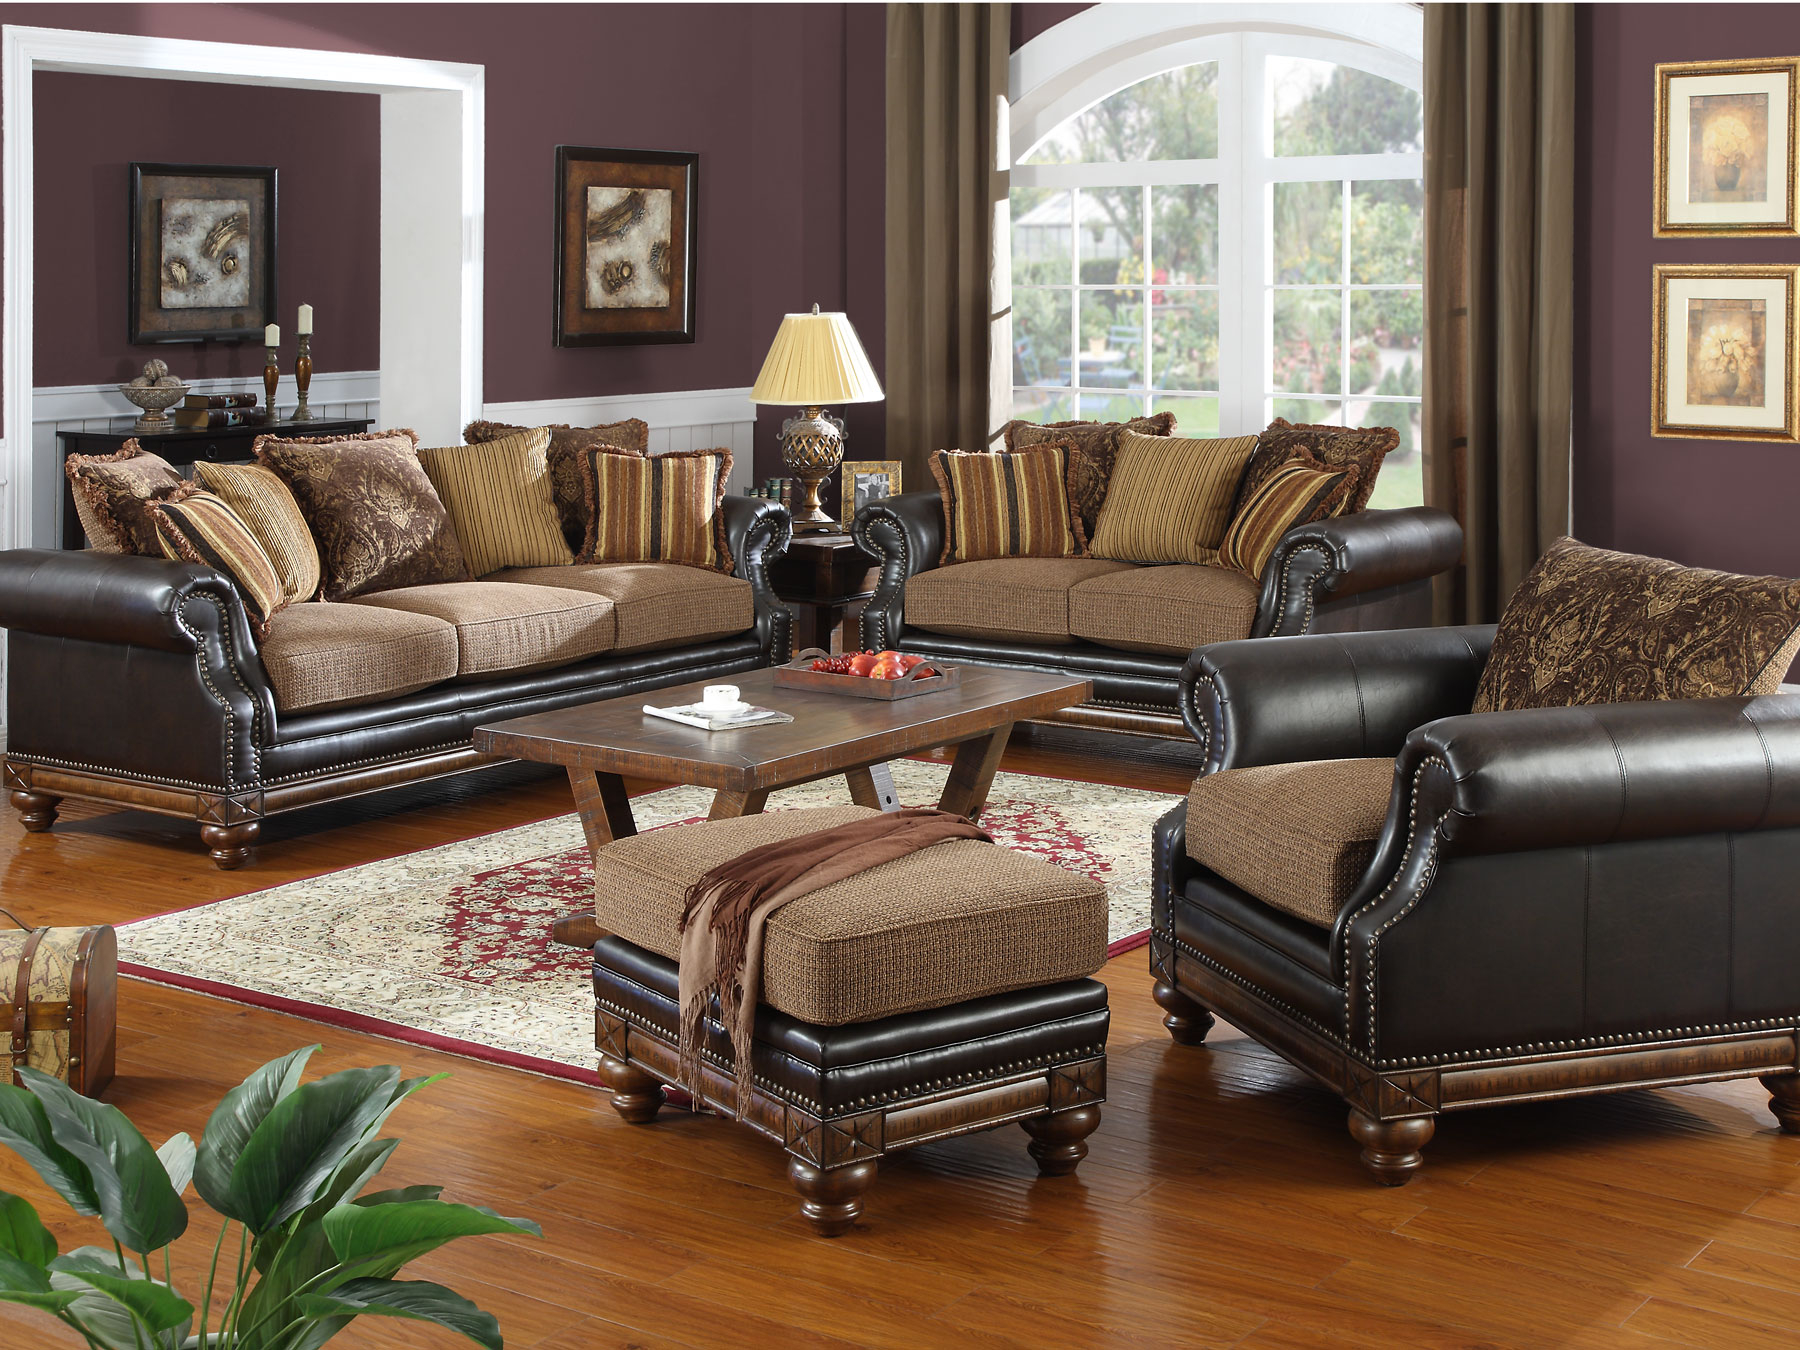 A Complete Guide To Buy Furniture Living Room Sets Elites Home Decor within Deals On Living Room Sets